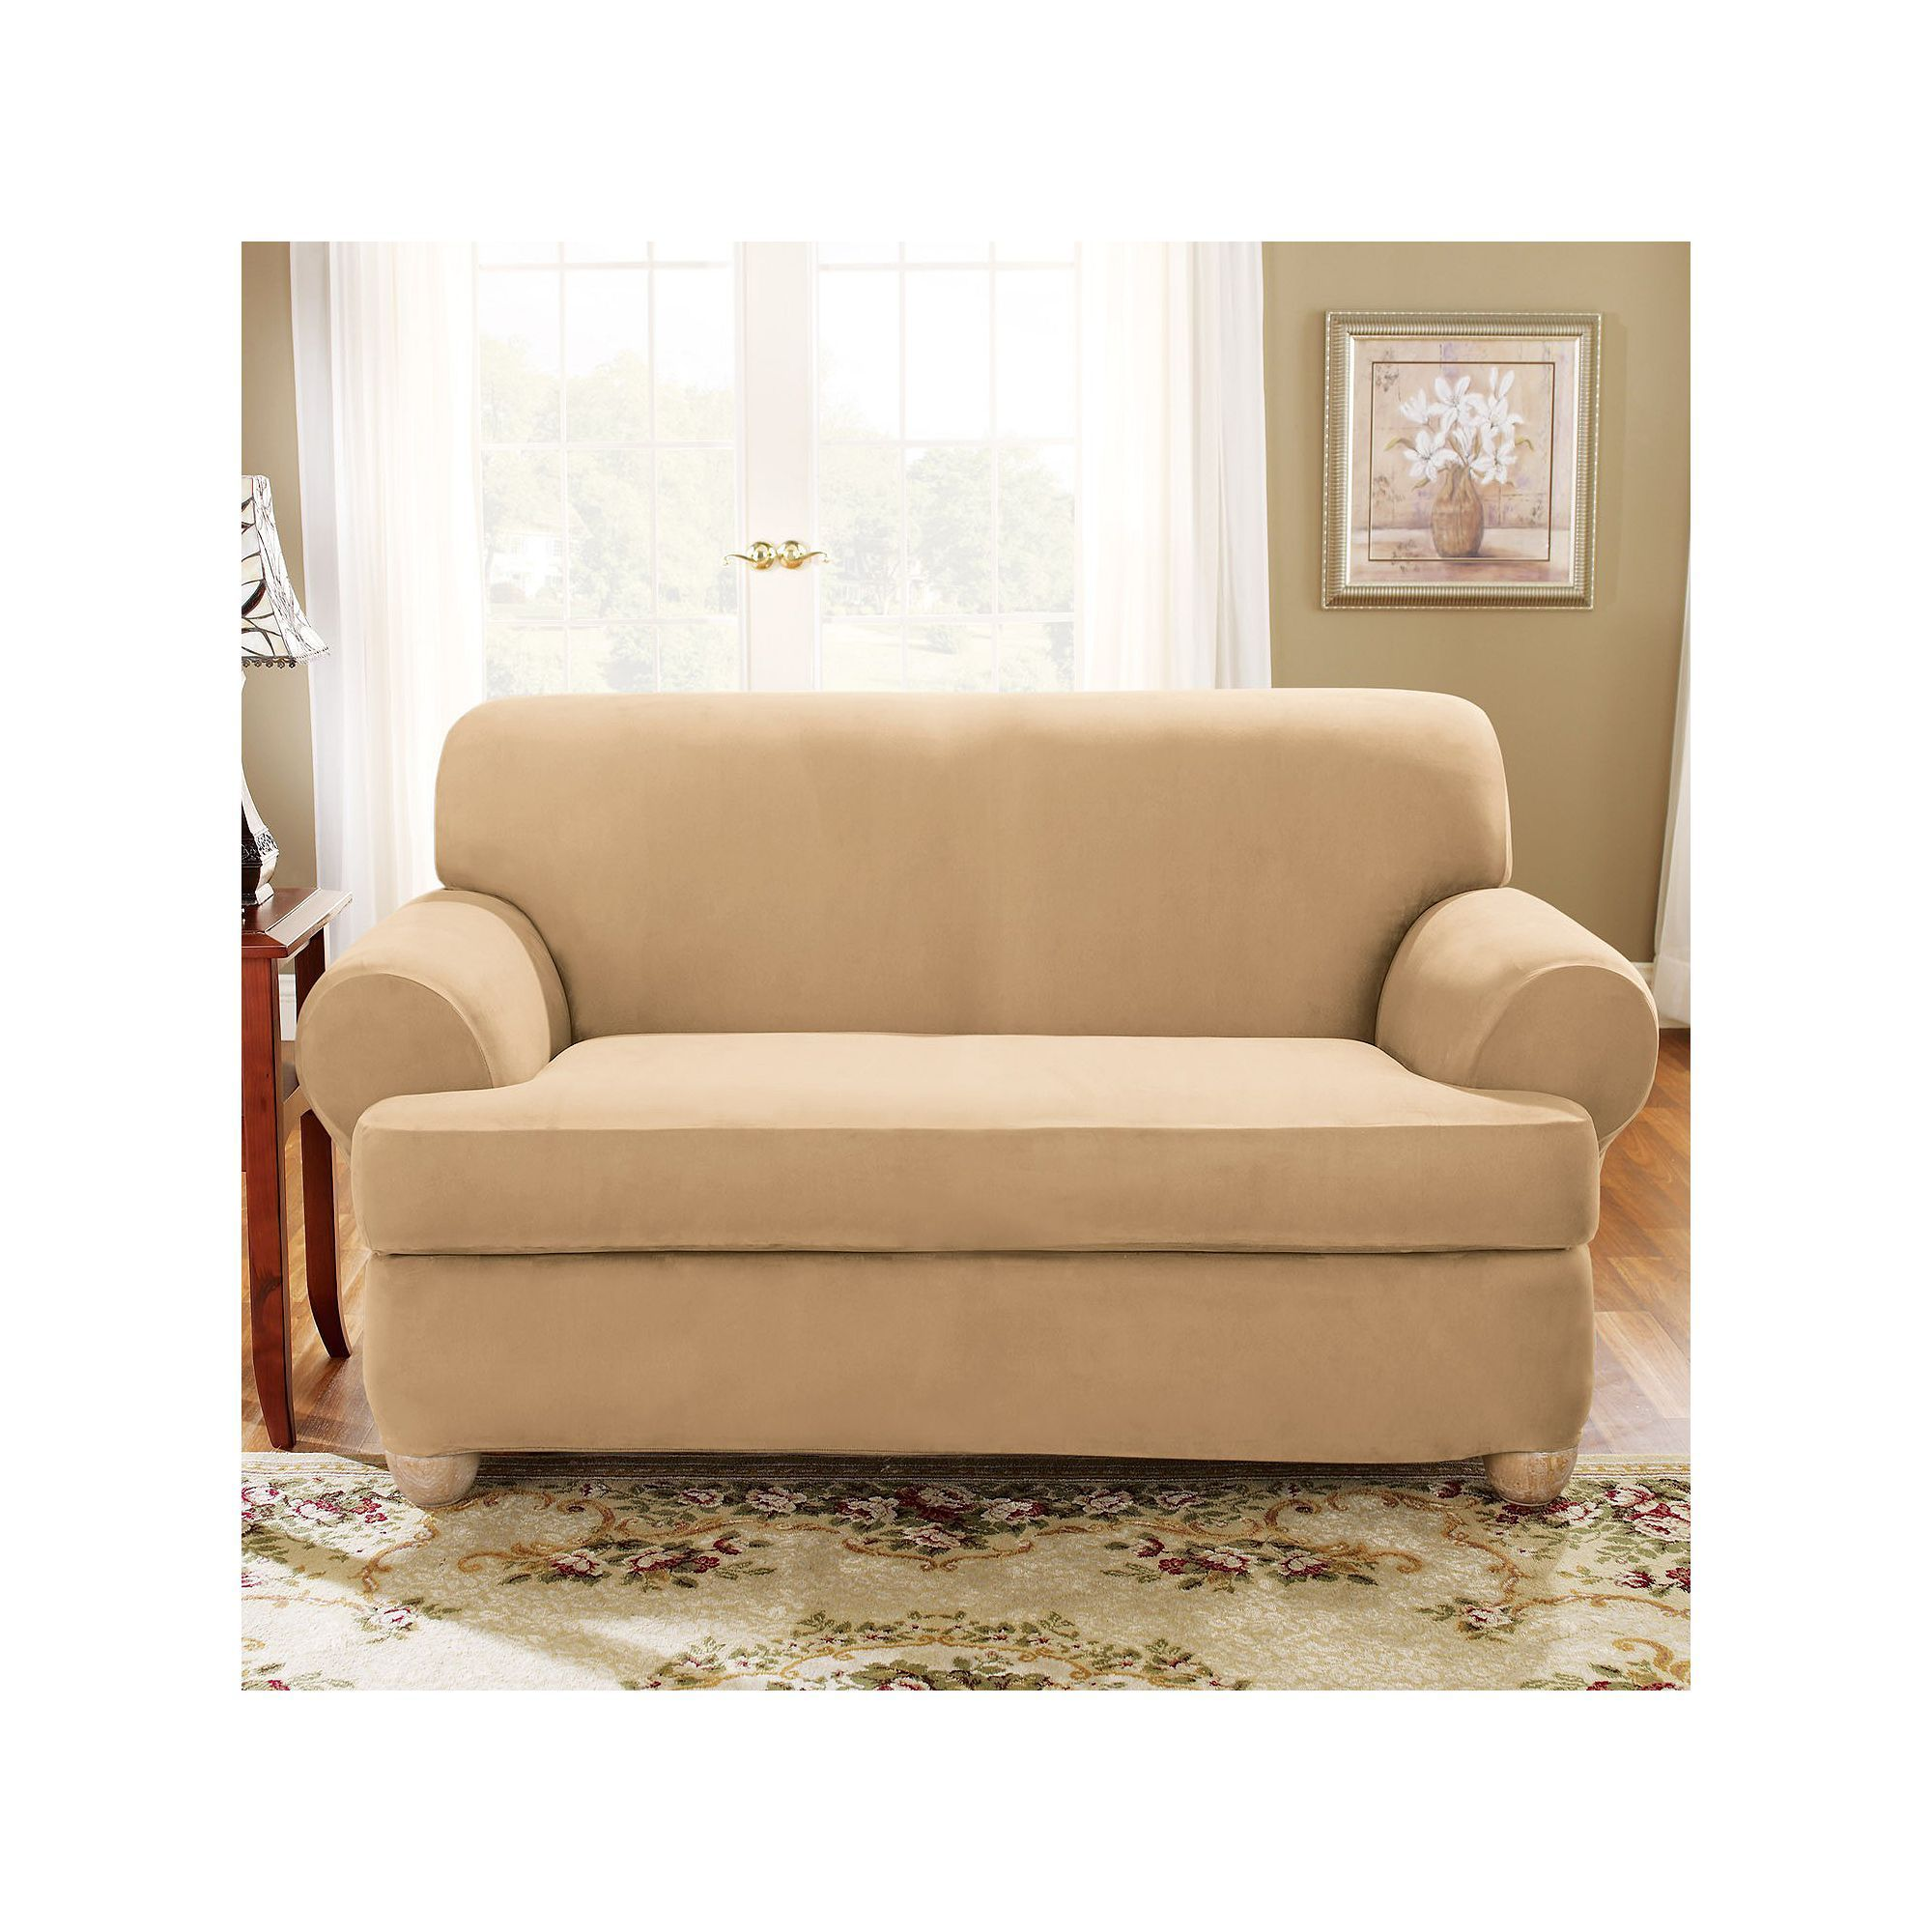 Sure Fit Stretch Suede T Cushion Sofa Slipcover Beig Green Khaki